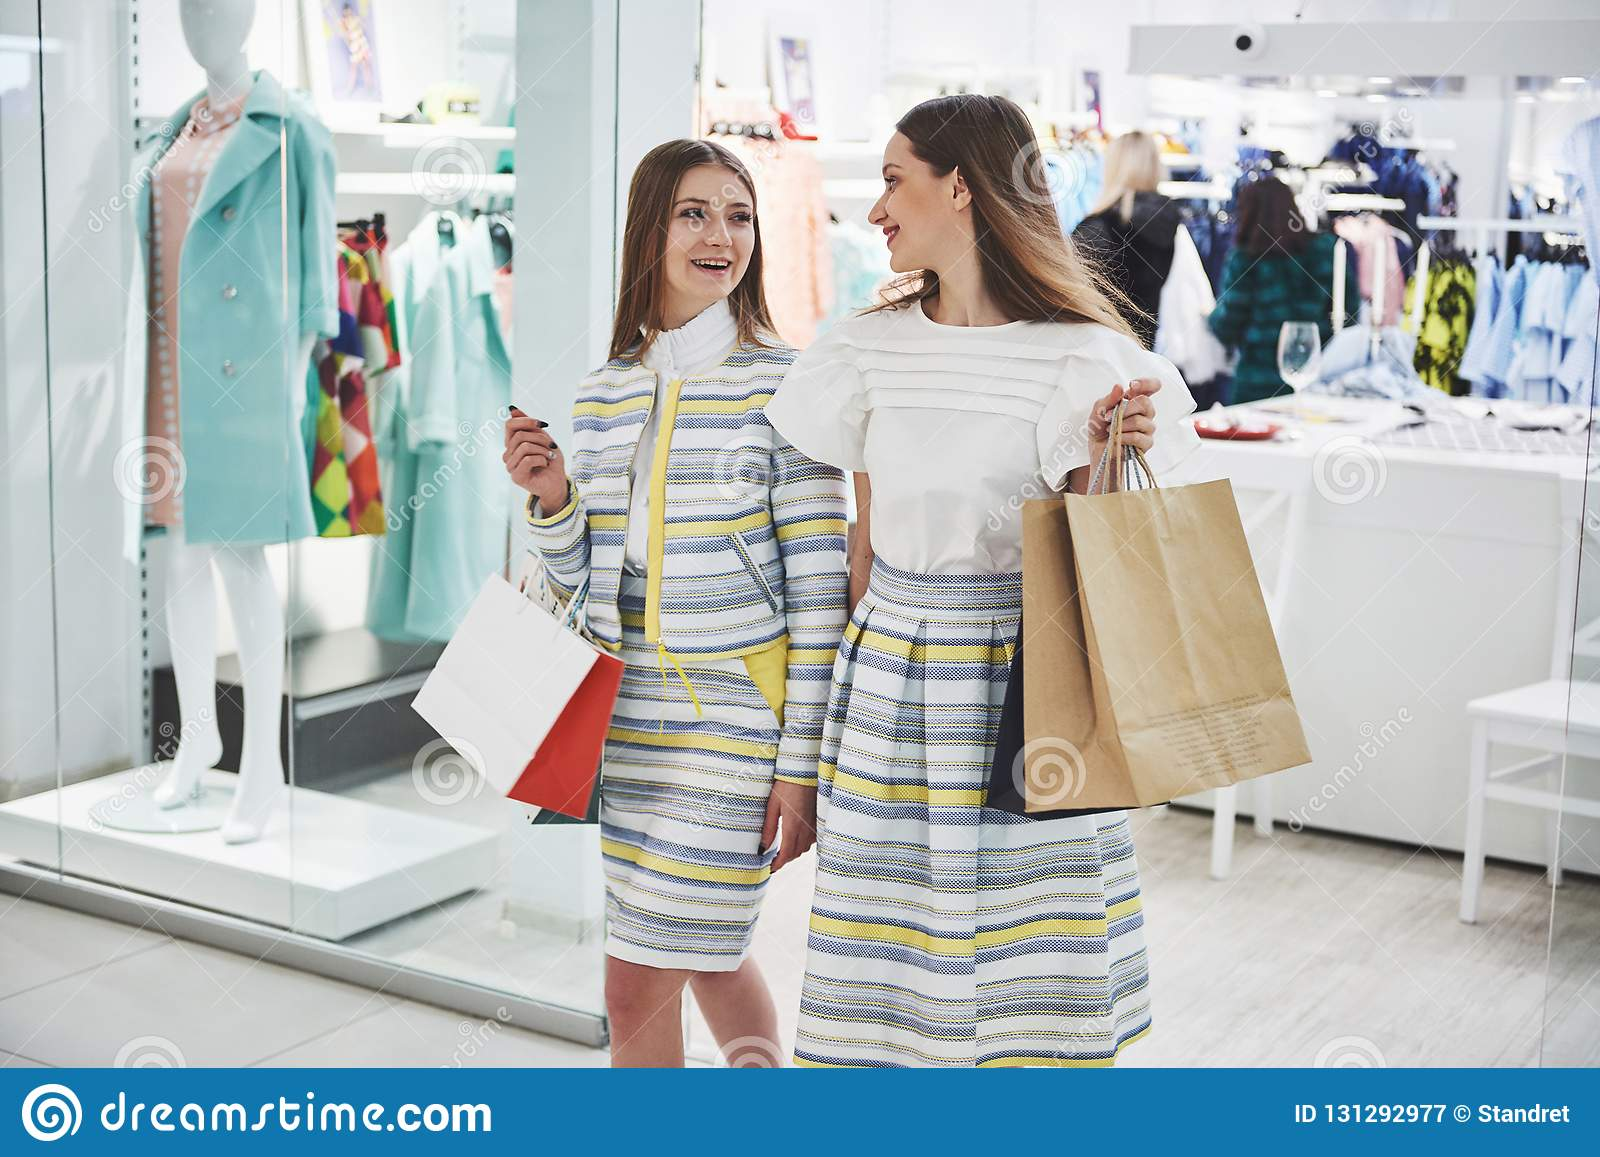 We should look at new dresses Rear view of two beautiful women with shopping bags looking away with smile while walking